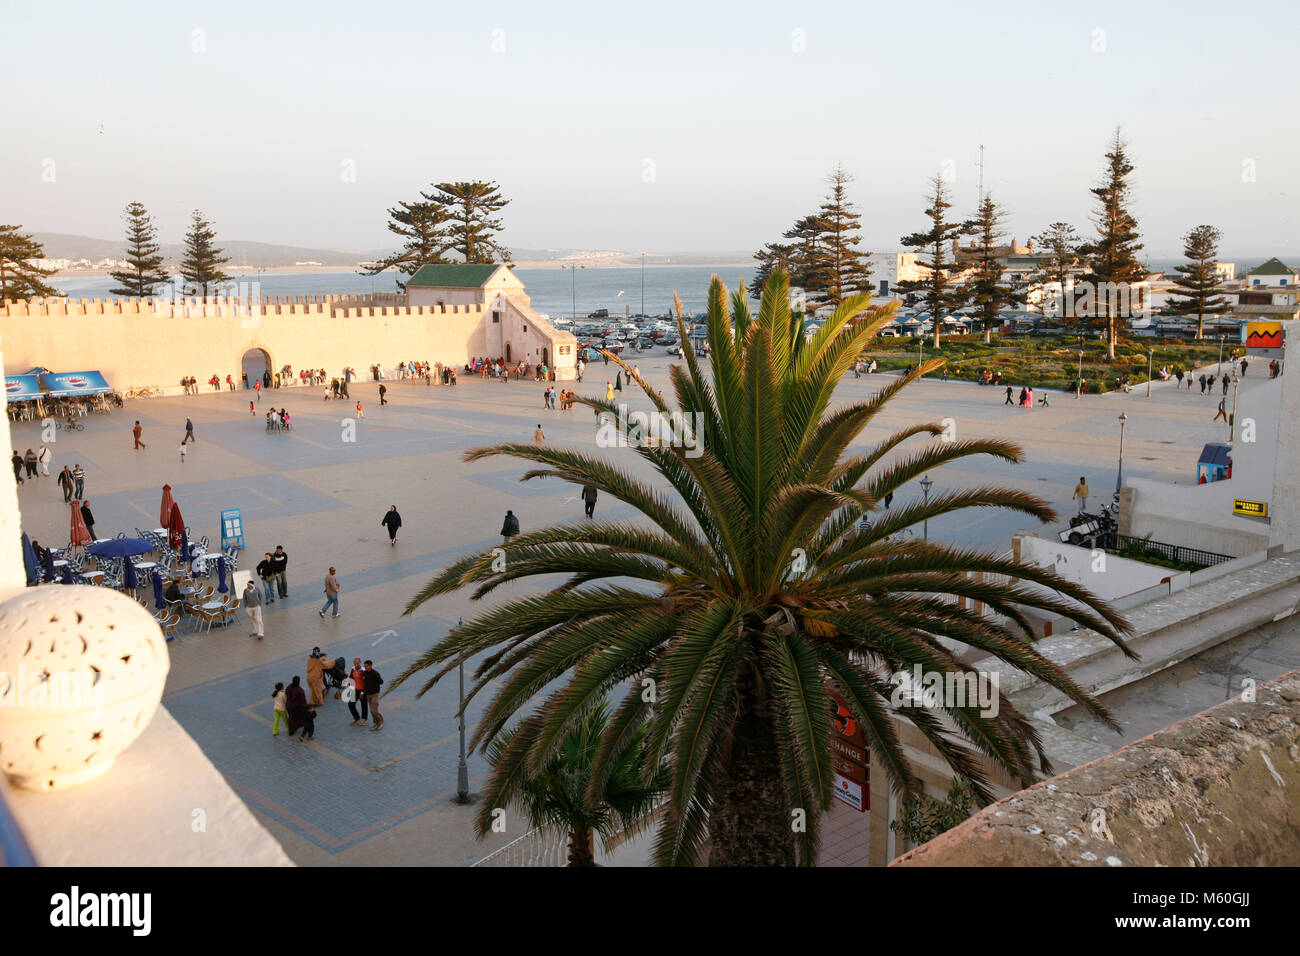 The main sqaure of the beachside city of Essaouira, Morocco sits just outside the city's ancient walls. - Stock Image